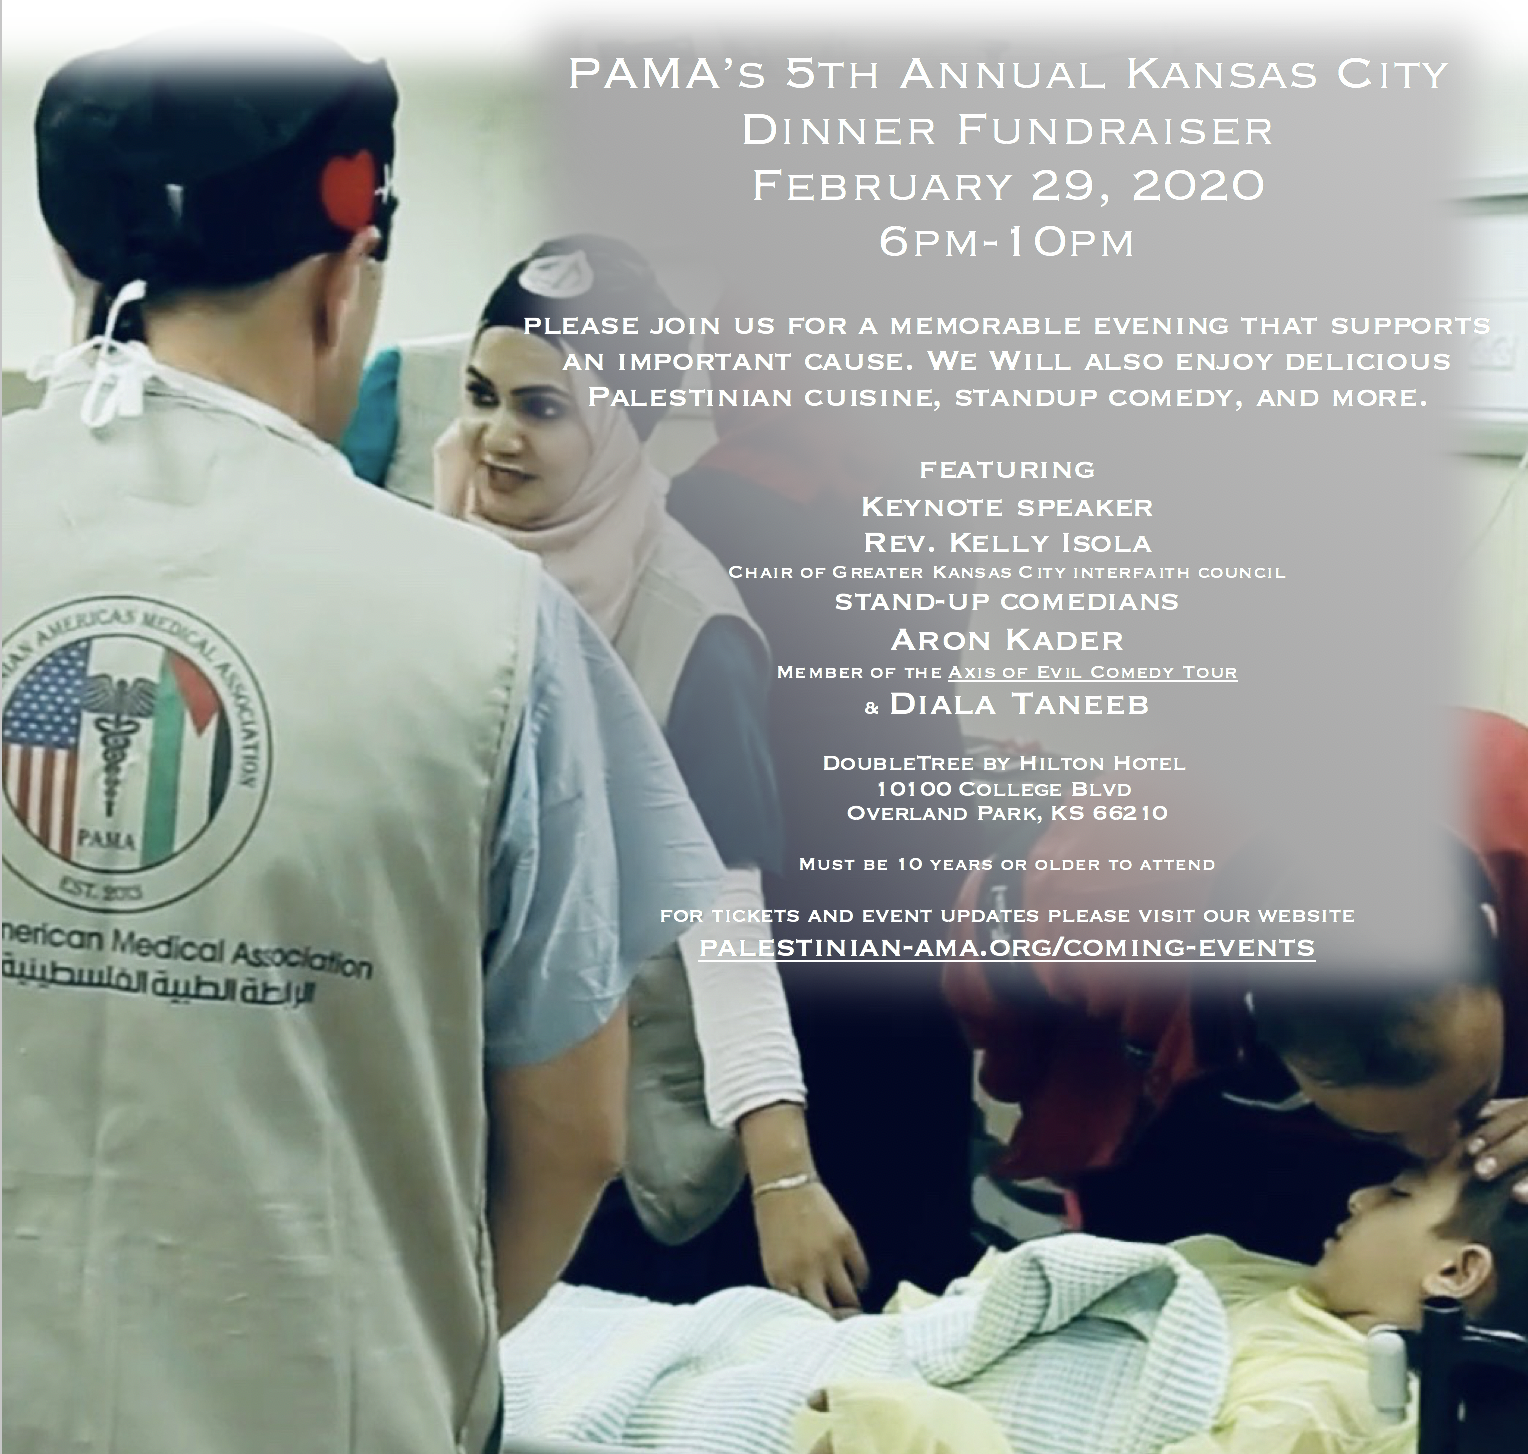 PAMA Fundraising Dinner/Kansas City image